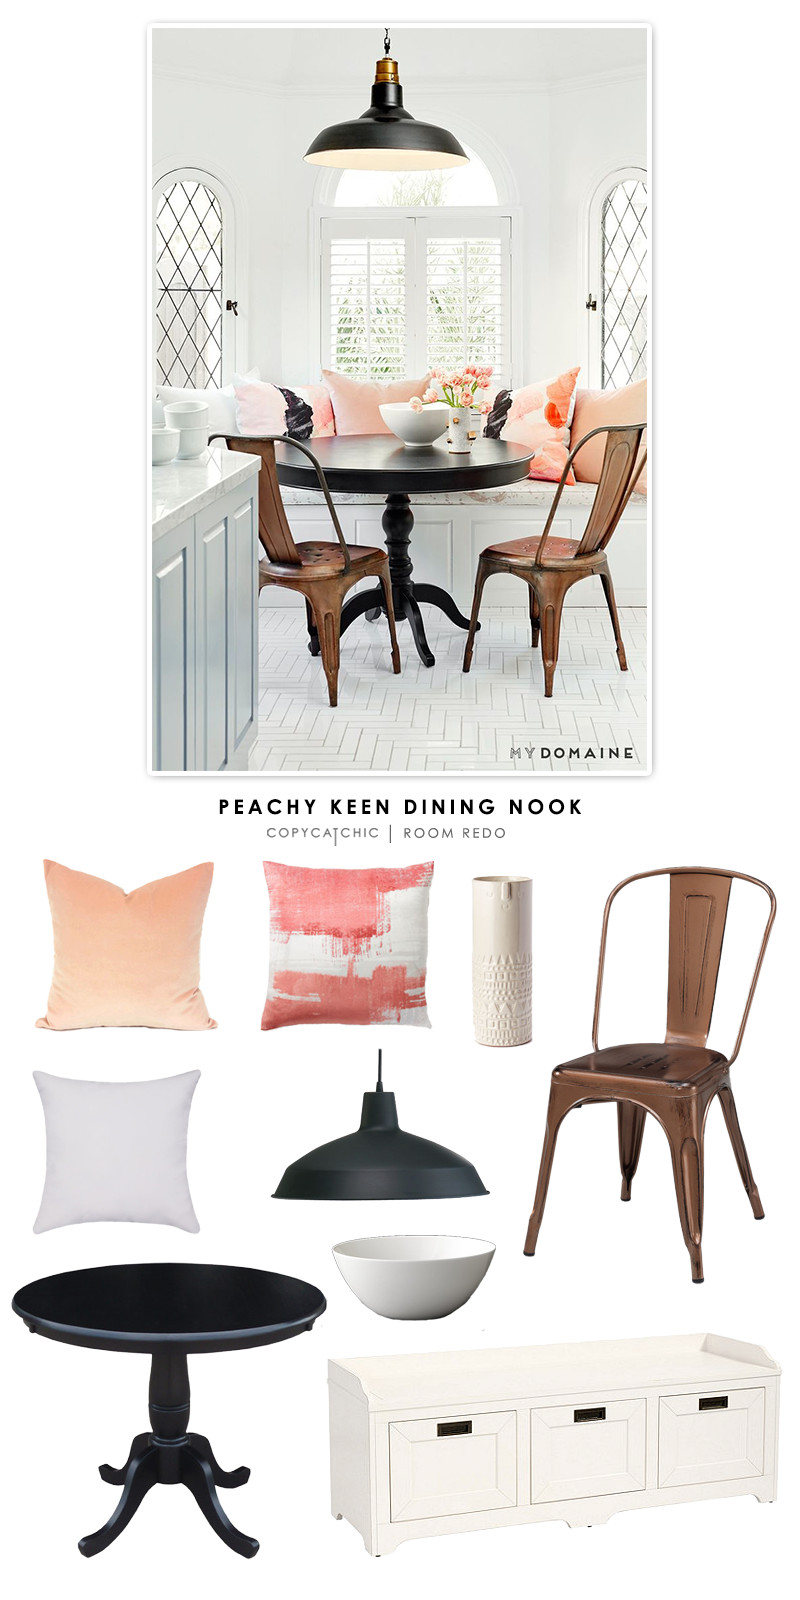 Copy Cat Chic Room Redo | Peachy Keen Dining Nook - copycatchic